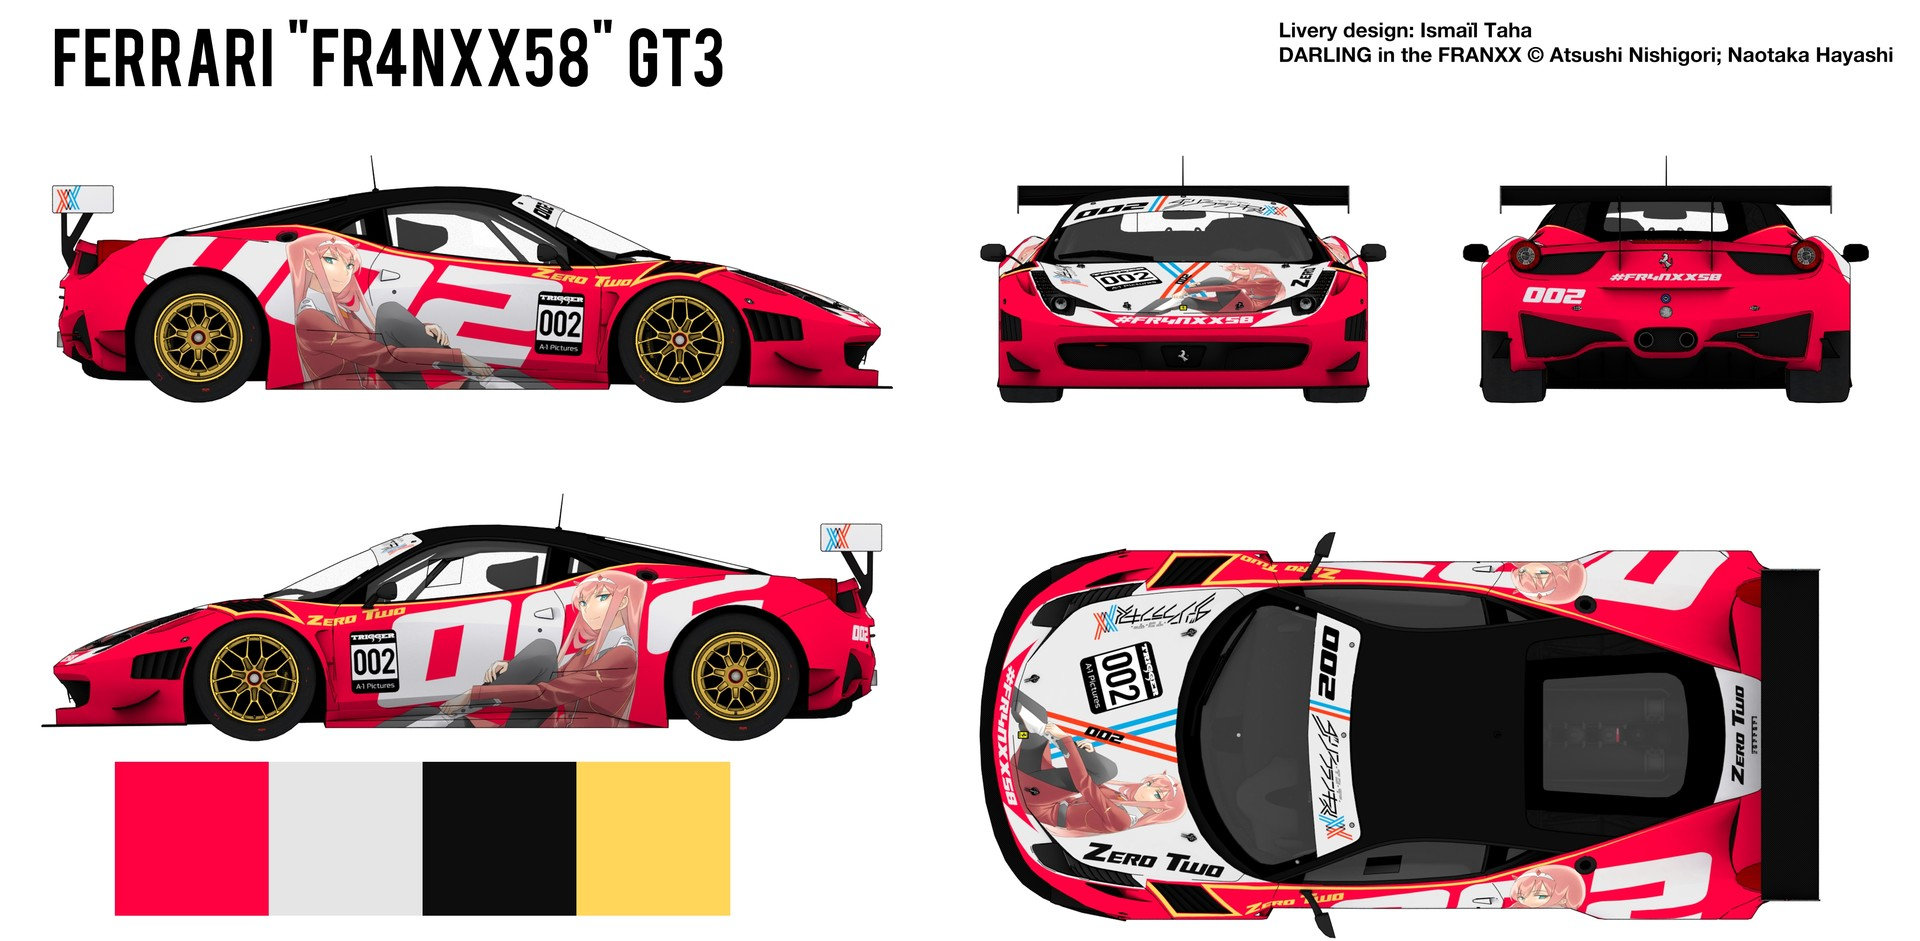 Artstation ferrari fr4nxx58 gt3 ismal taha blueprint rendered from the 3d model see below malvernweather Choice Image